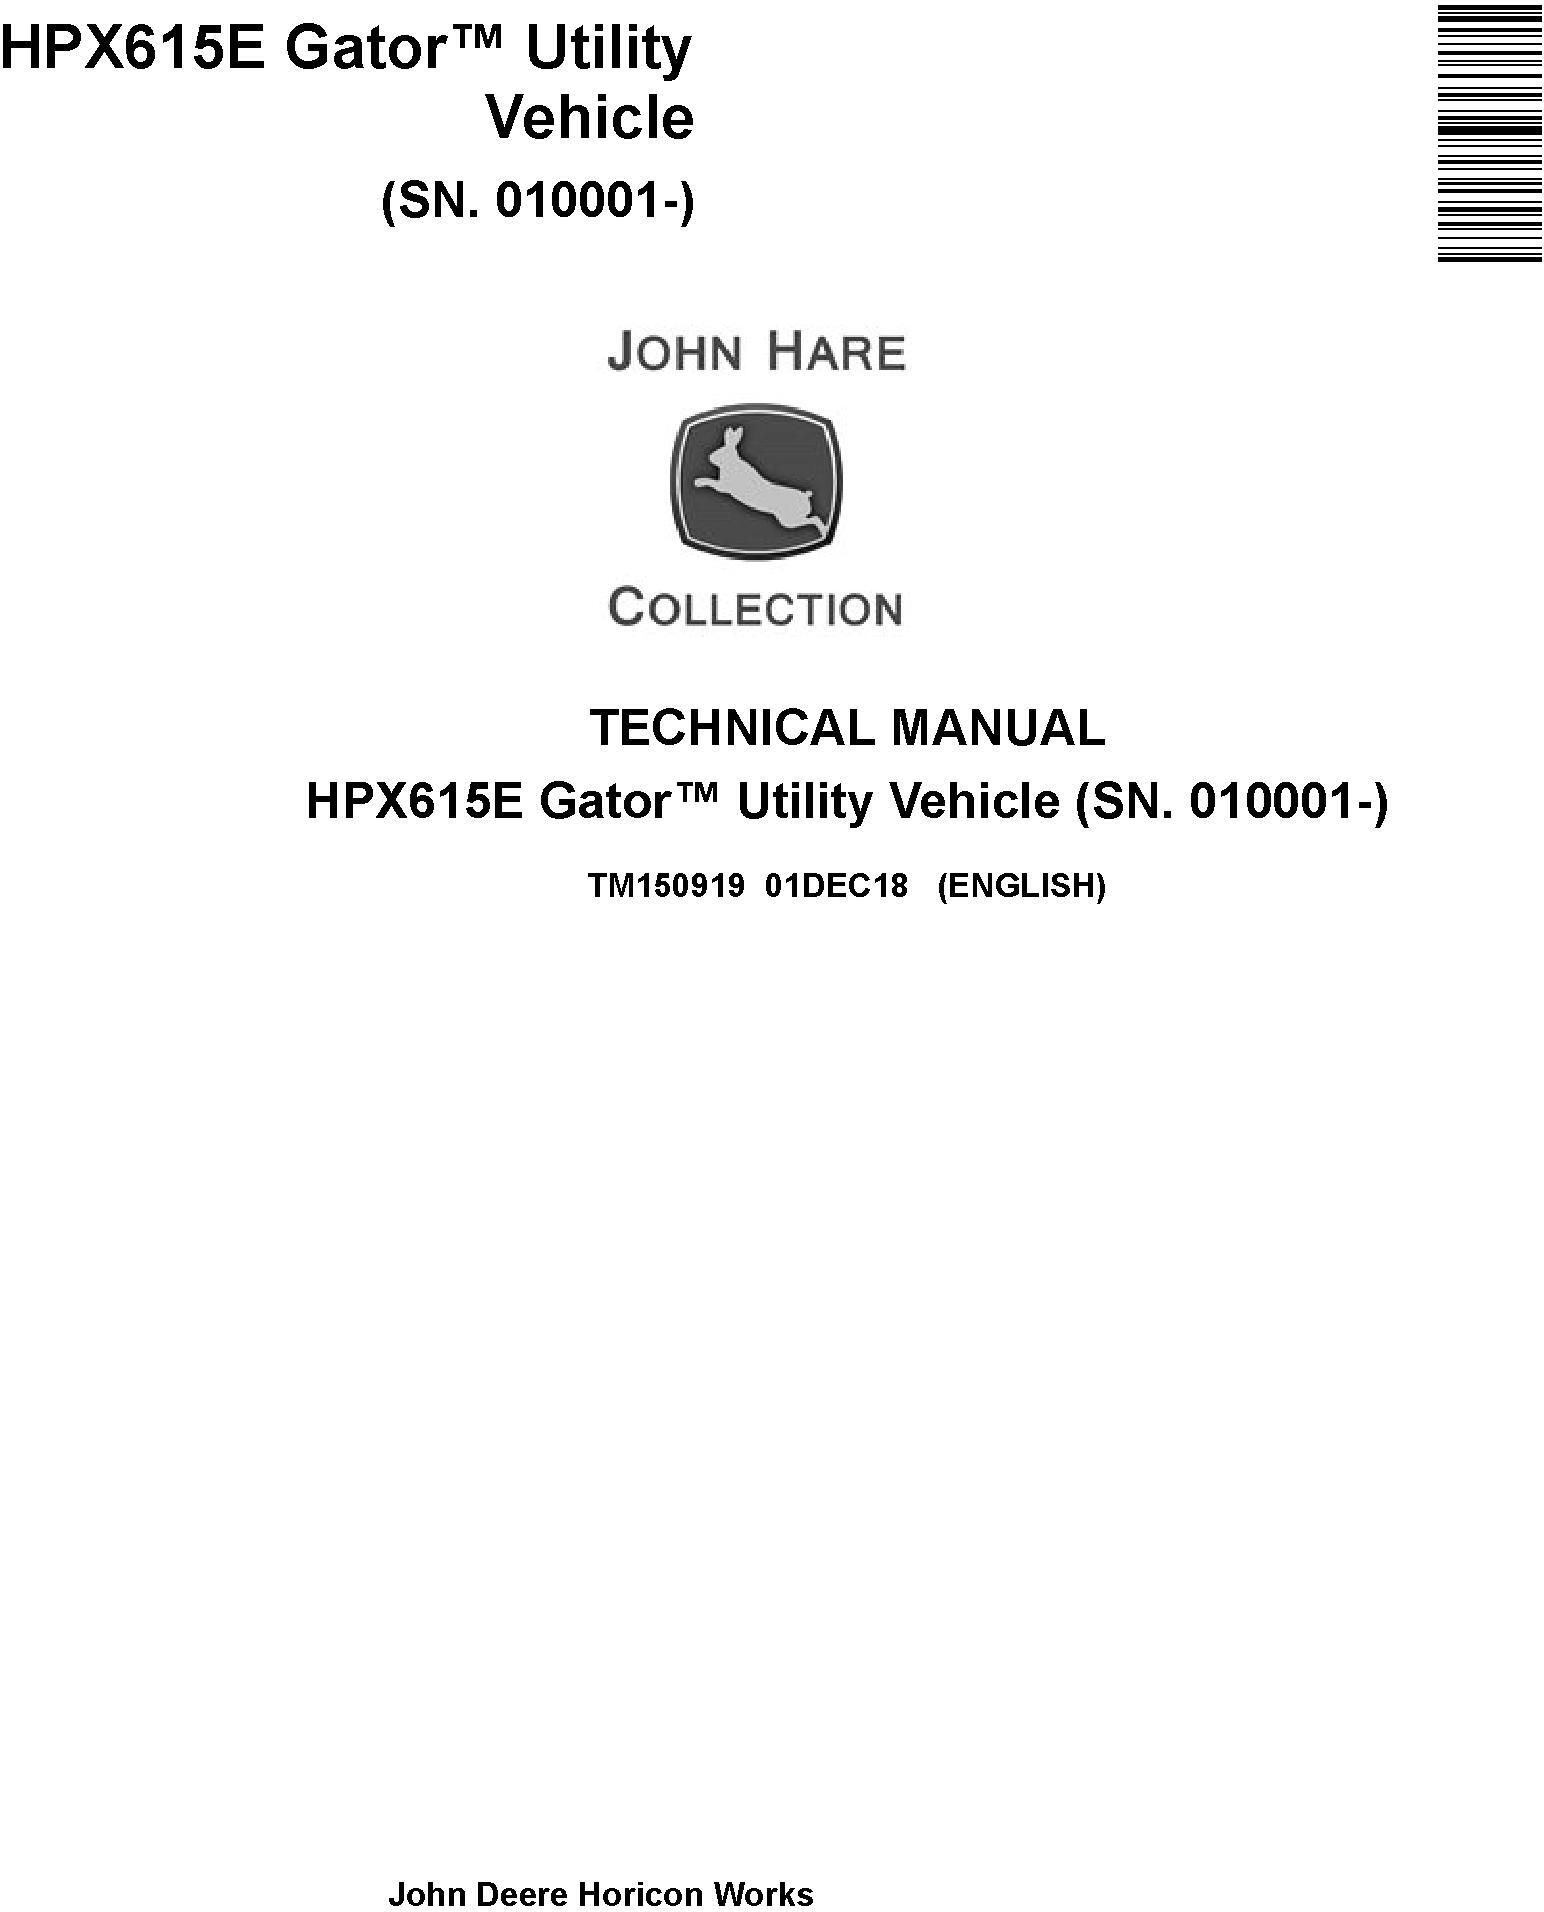 John Deere HPX615E Gator Utility Vehicle (SN. 010001-) Technical Manual (TM150919) - 19301